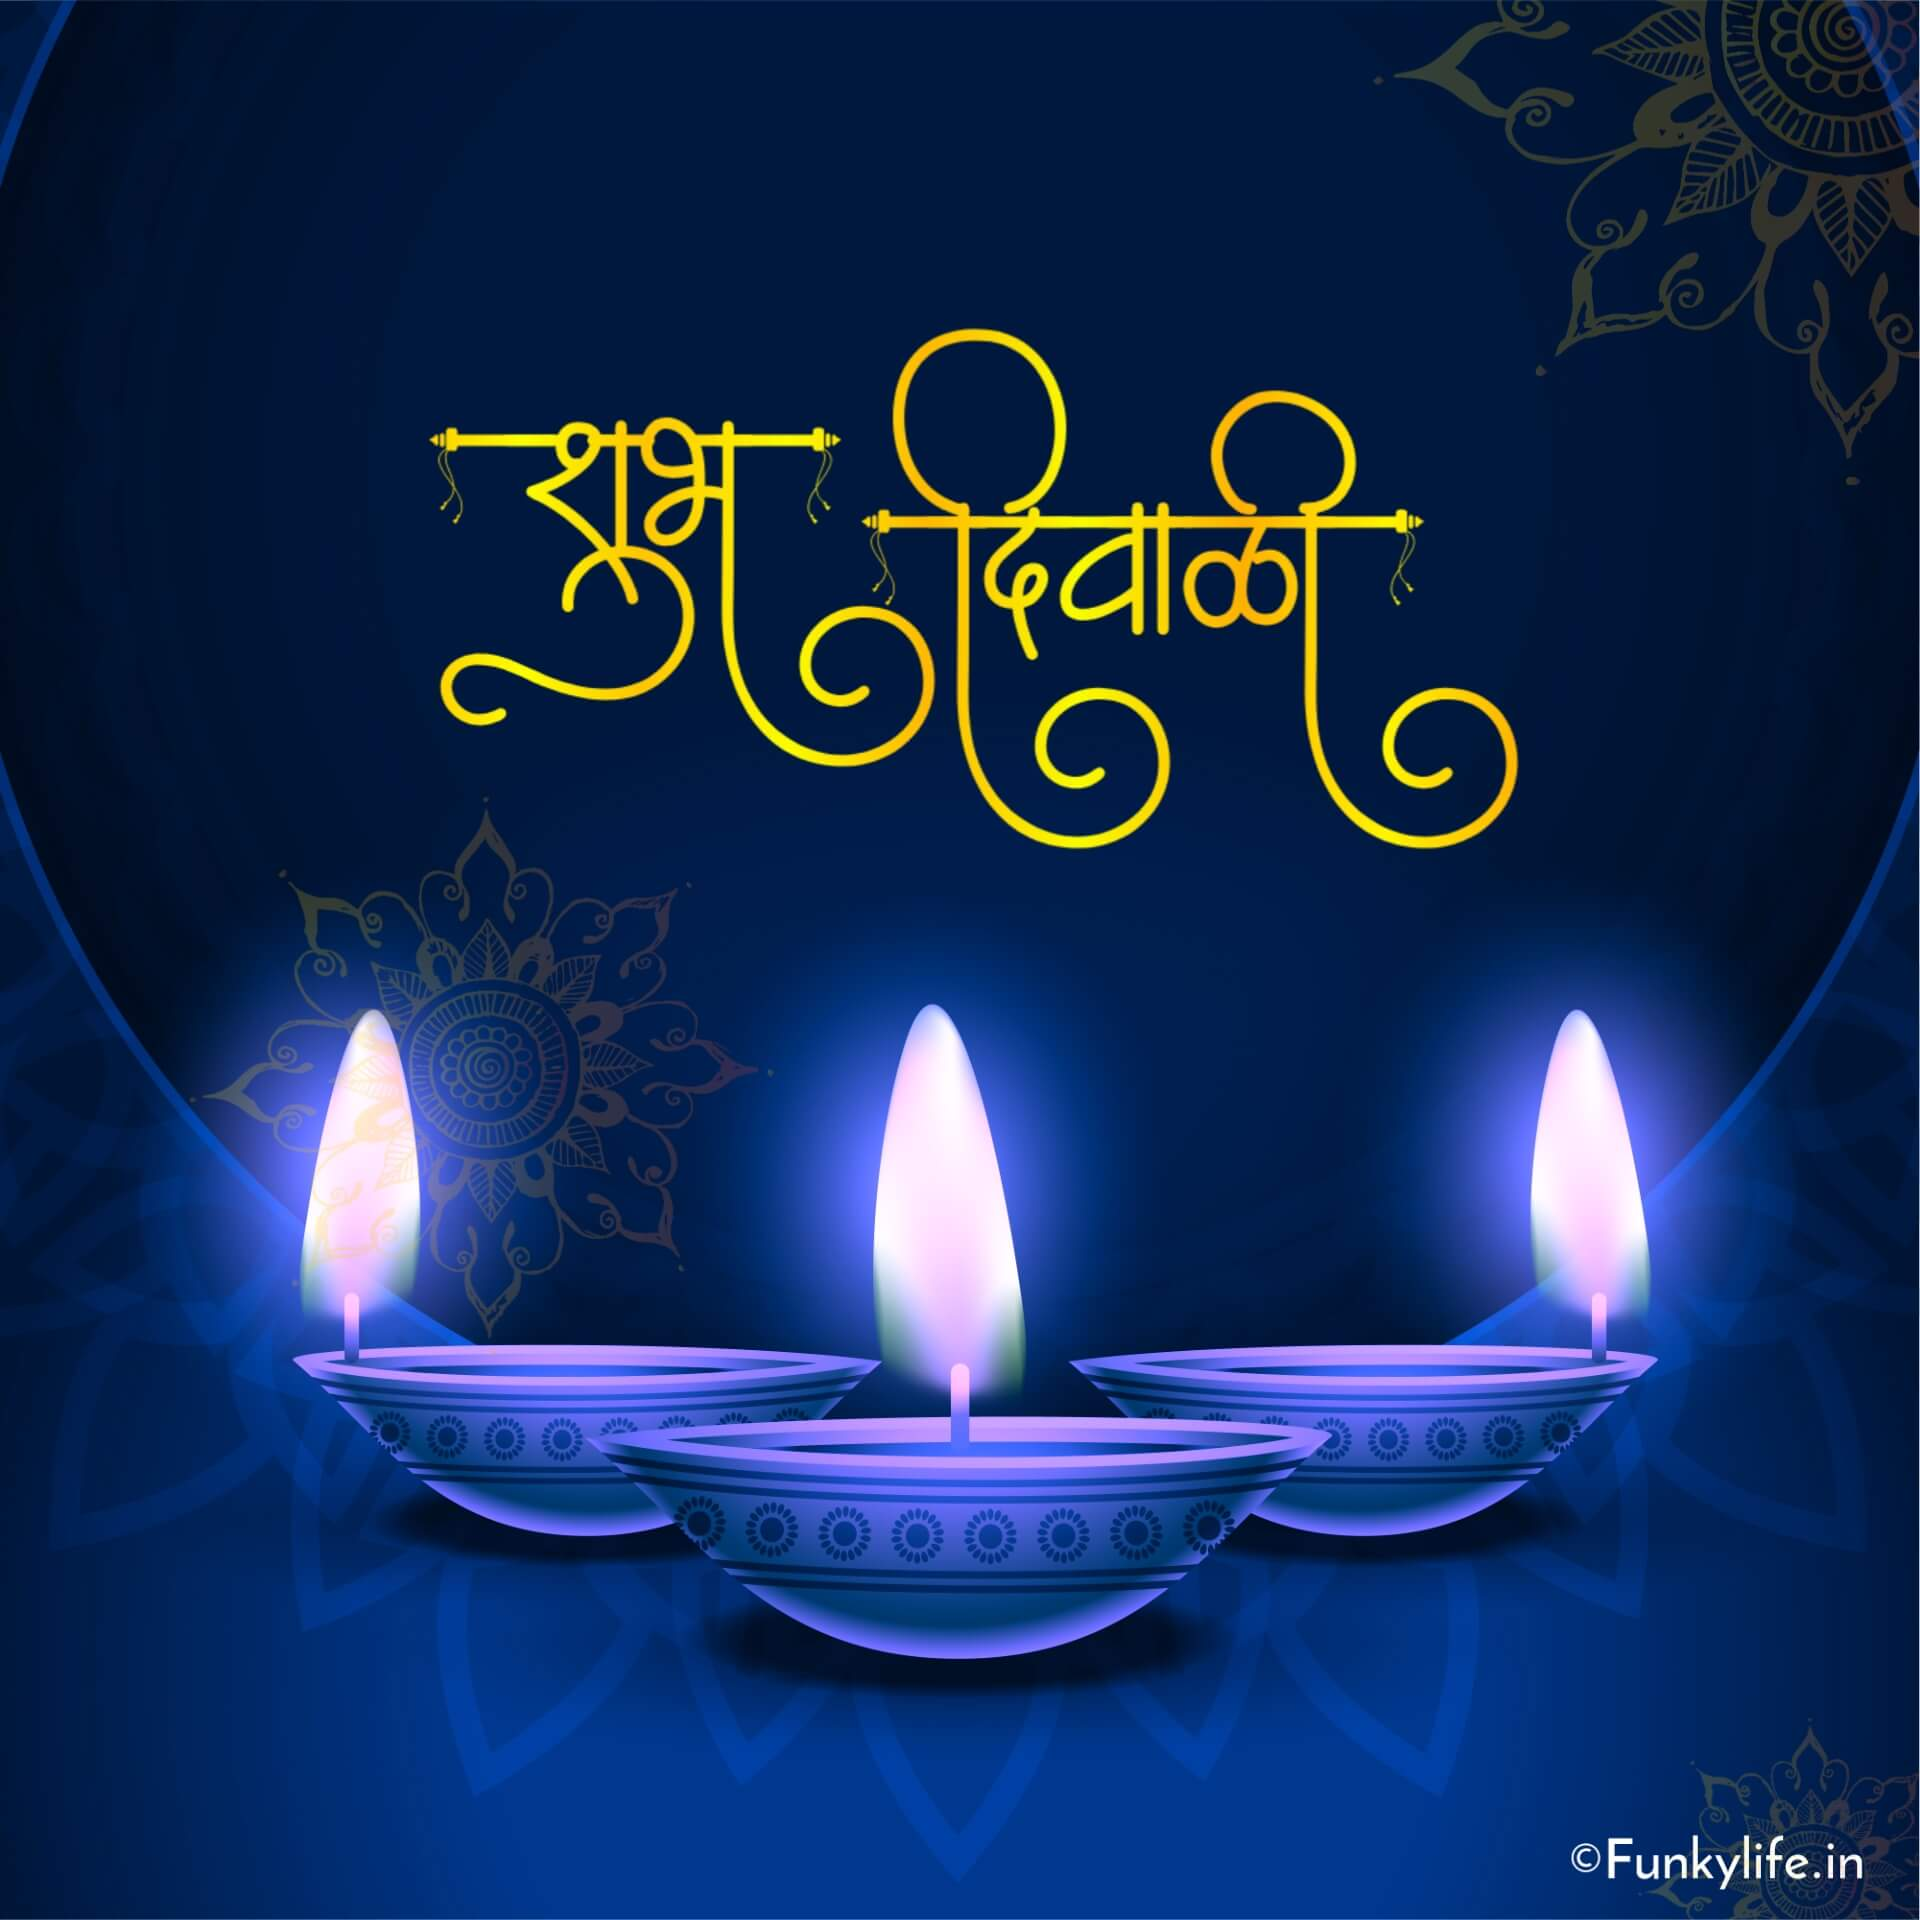 Shubh Diwali Picture